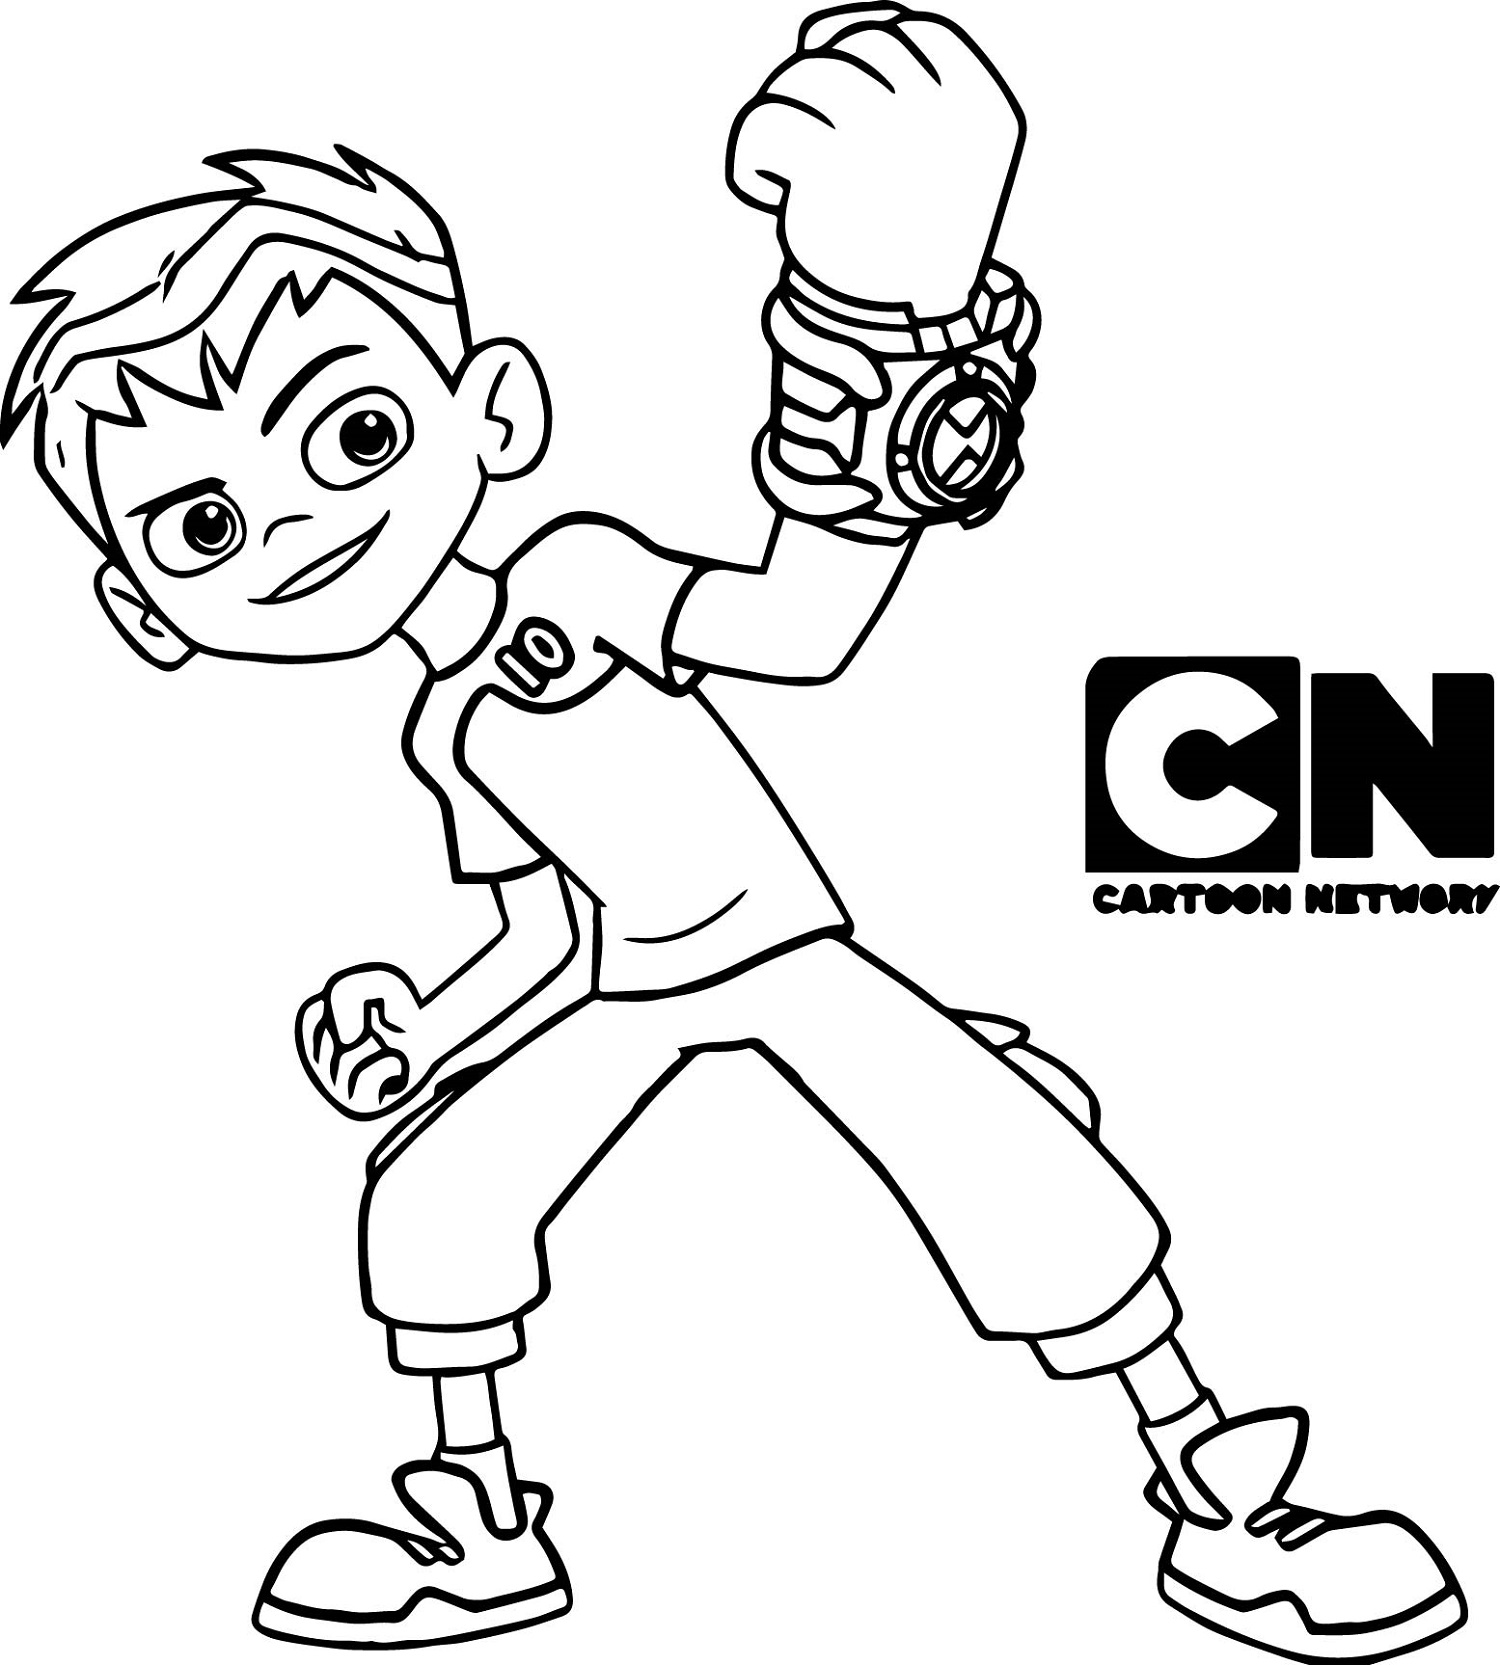 Ben 10 Coloring Pages for Children | 101 Coloring